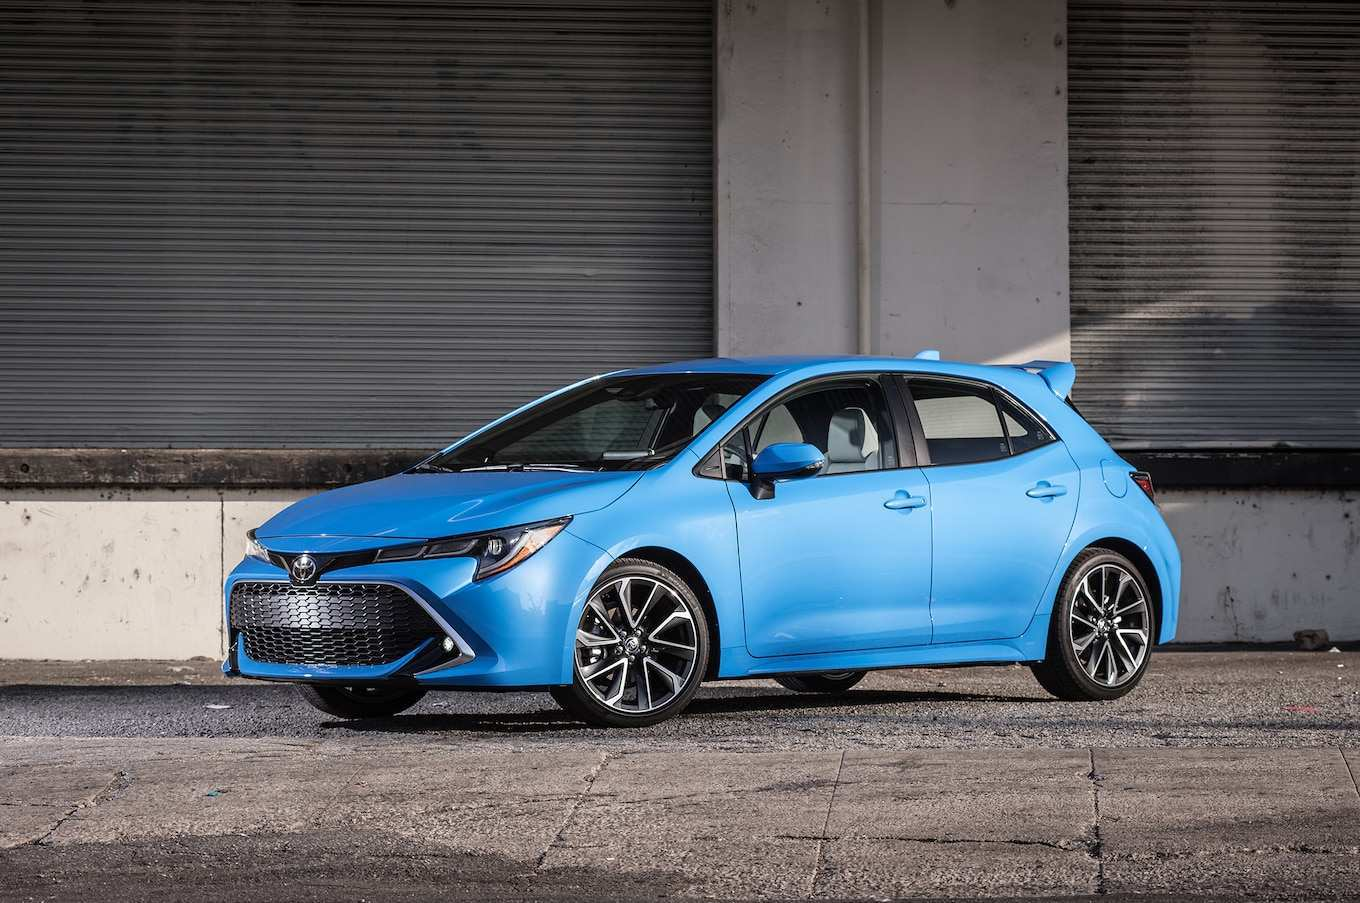 45 New 2019 Toyota Corolla Hatchback Performance for 2019 Toyota Corolla Hatchback